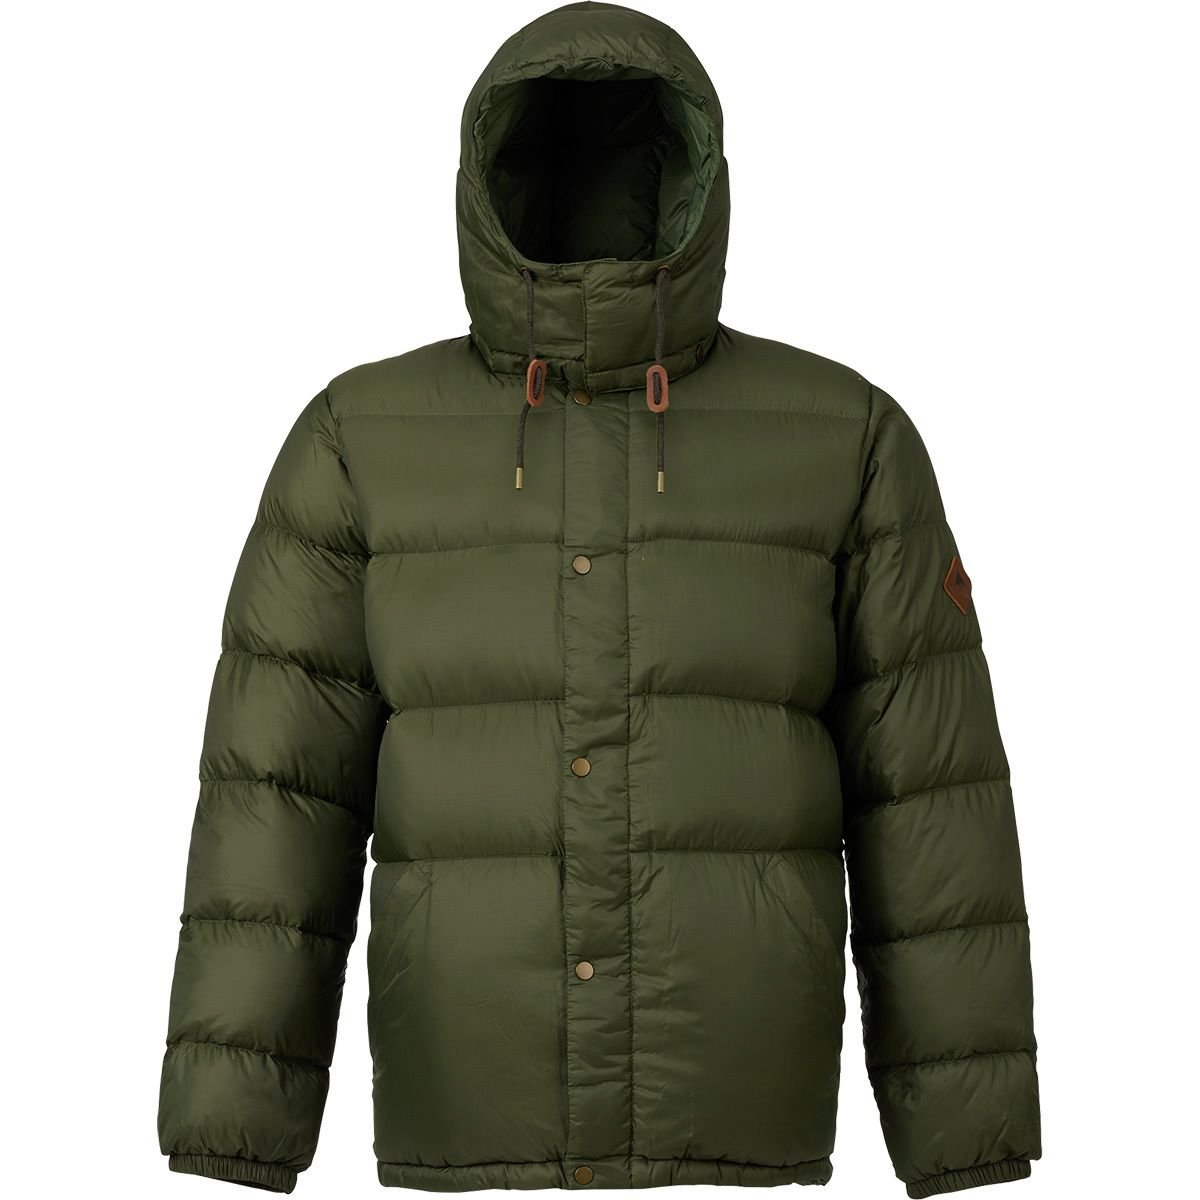 (バートン) Burton Heritage Down Jacket メンズ ジャケットForest Night [並行輸入品] B079M6GKGD 日本サイズ L (US M)|Forest Night Forest Night 日本サイズ L (US M)